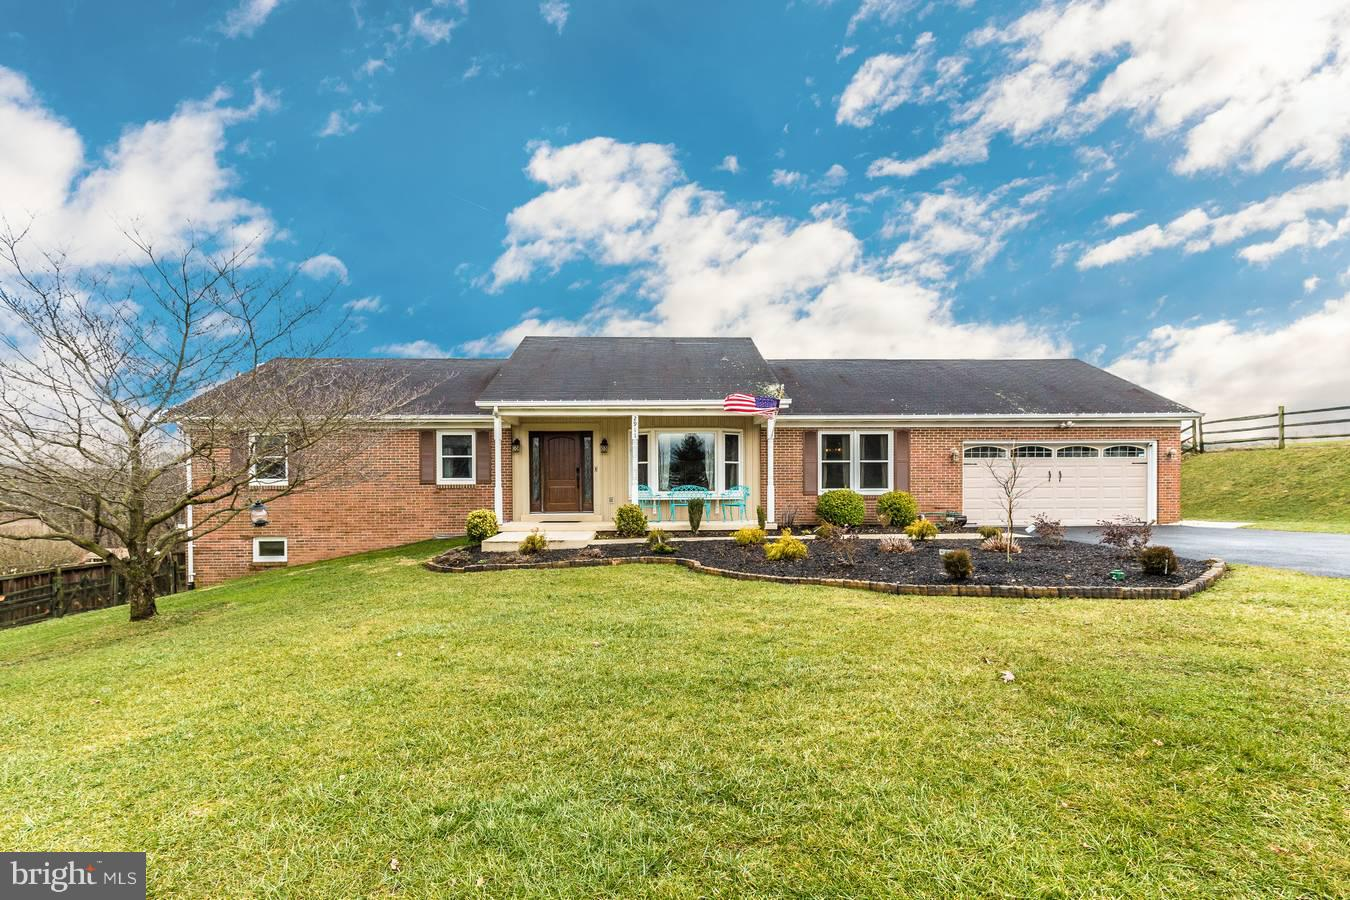 2911 CARONE DRIVE, JEFFERSON, MD 21755